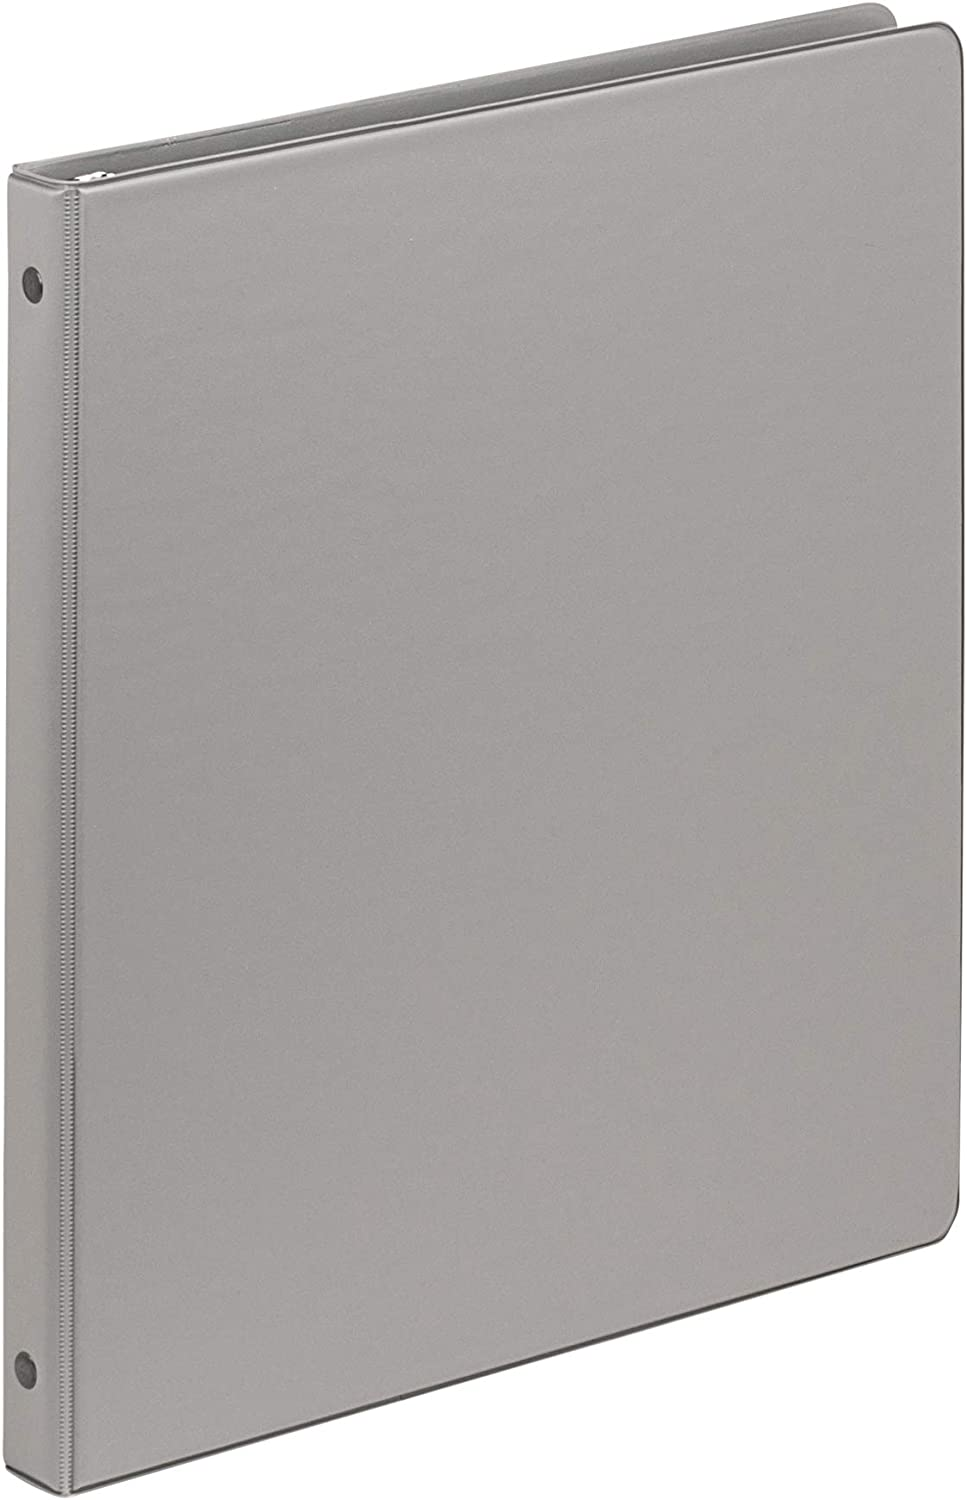 Samsill .5 Inch Value Document Storage 3 Ring Binder, Round Ring, 11 x 8.5 Inches, Gray (11111)